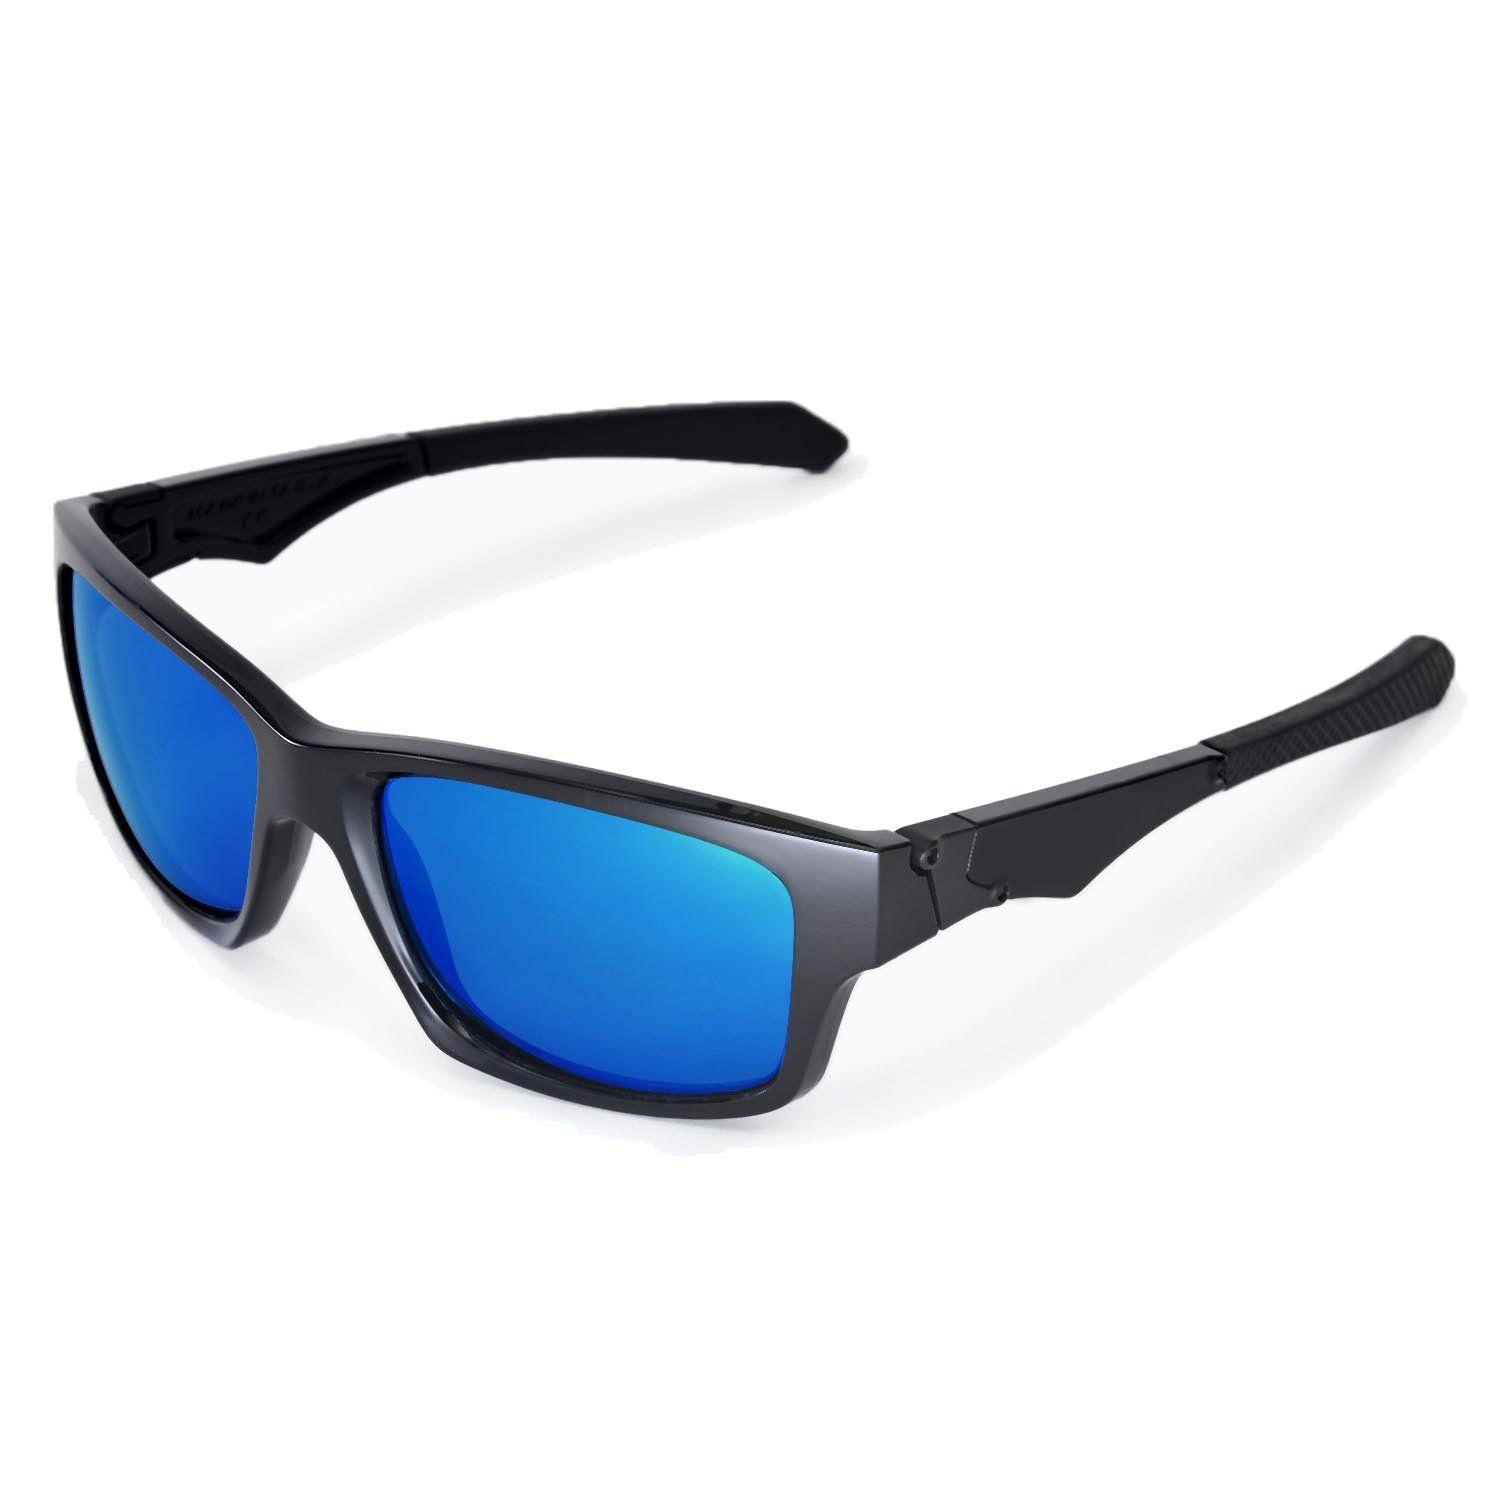 8ae8922d65a98 Walleva Replacement Lenses for Oakley Jupiter Squared Sunglasses Multiple  Options Available Ice Blue Polarized     Want to know more